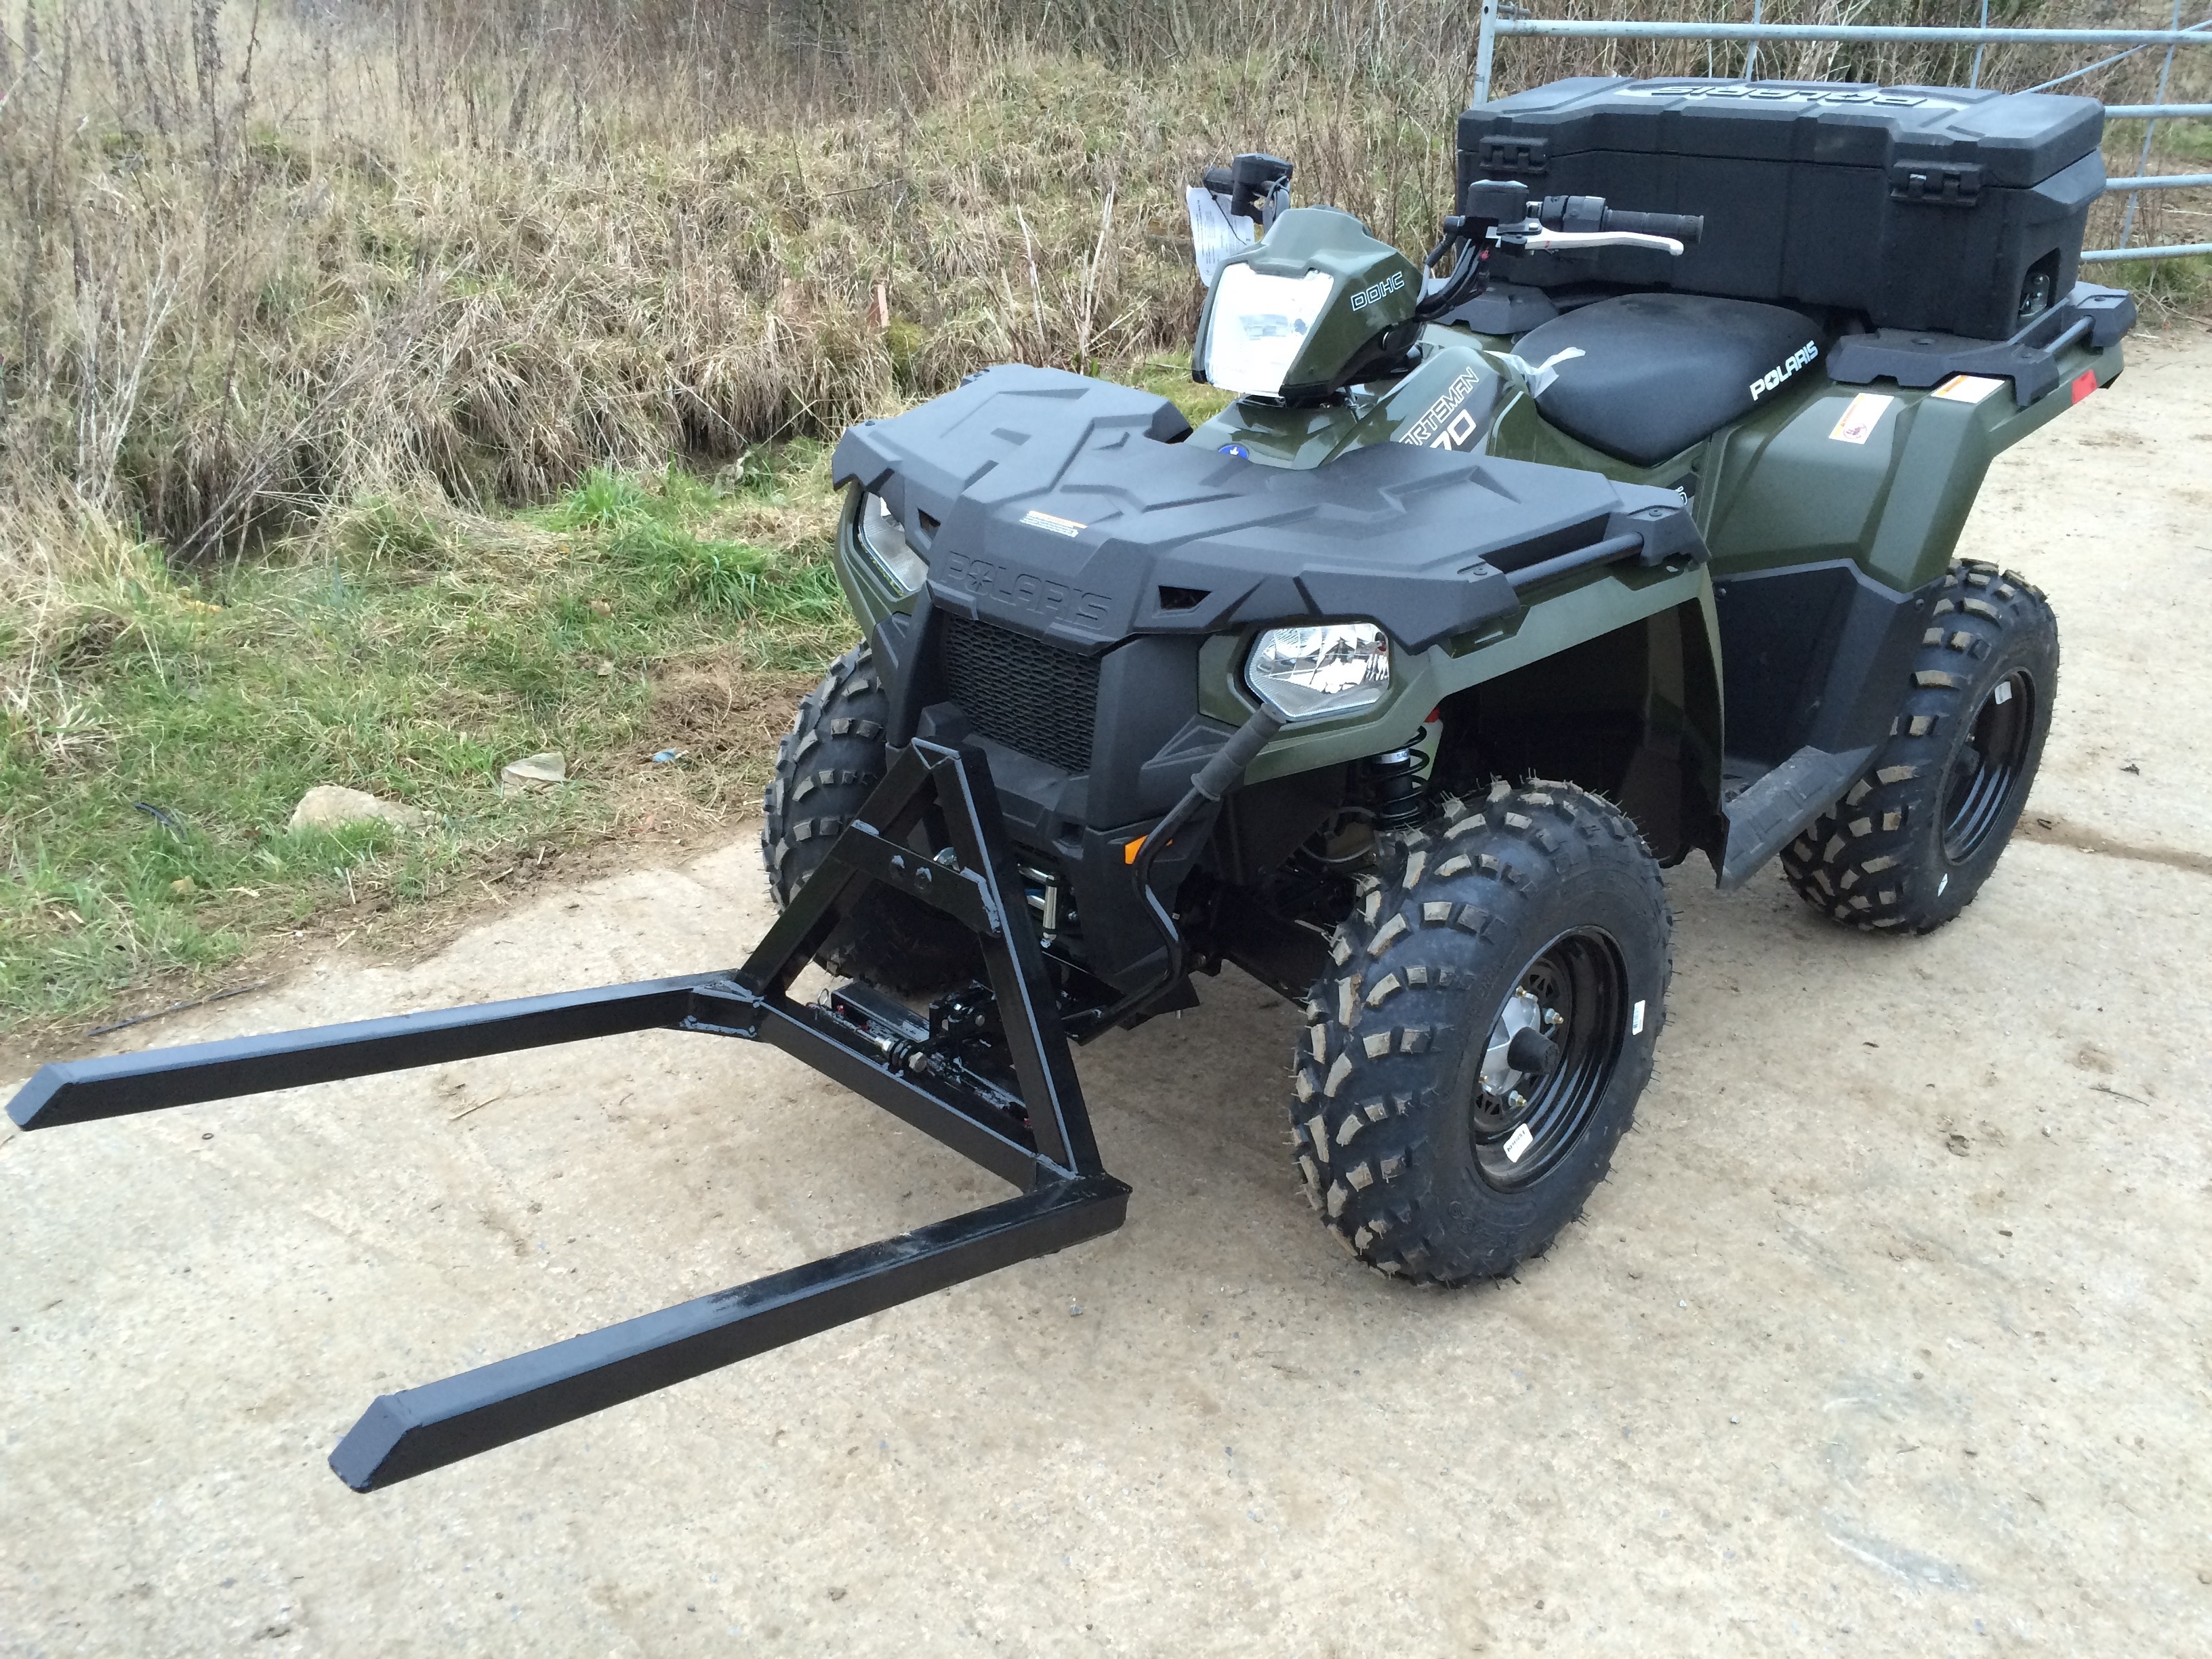 Fork lift quad bike polaris sportsman 570 david webb pallet forks custom built for polaris sportsman quad publicscrutiny